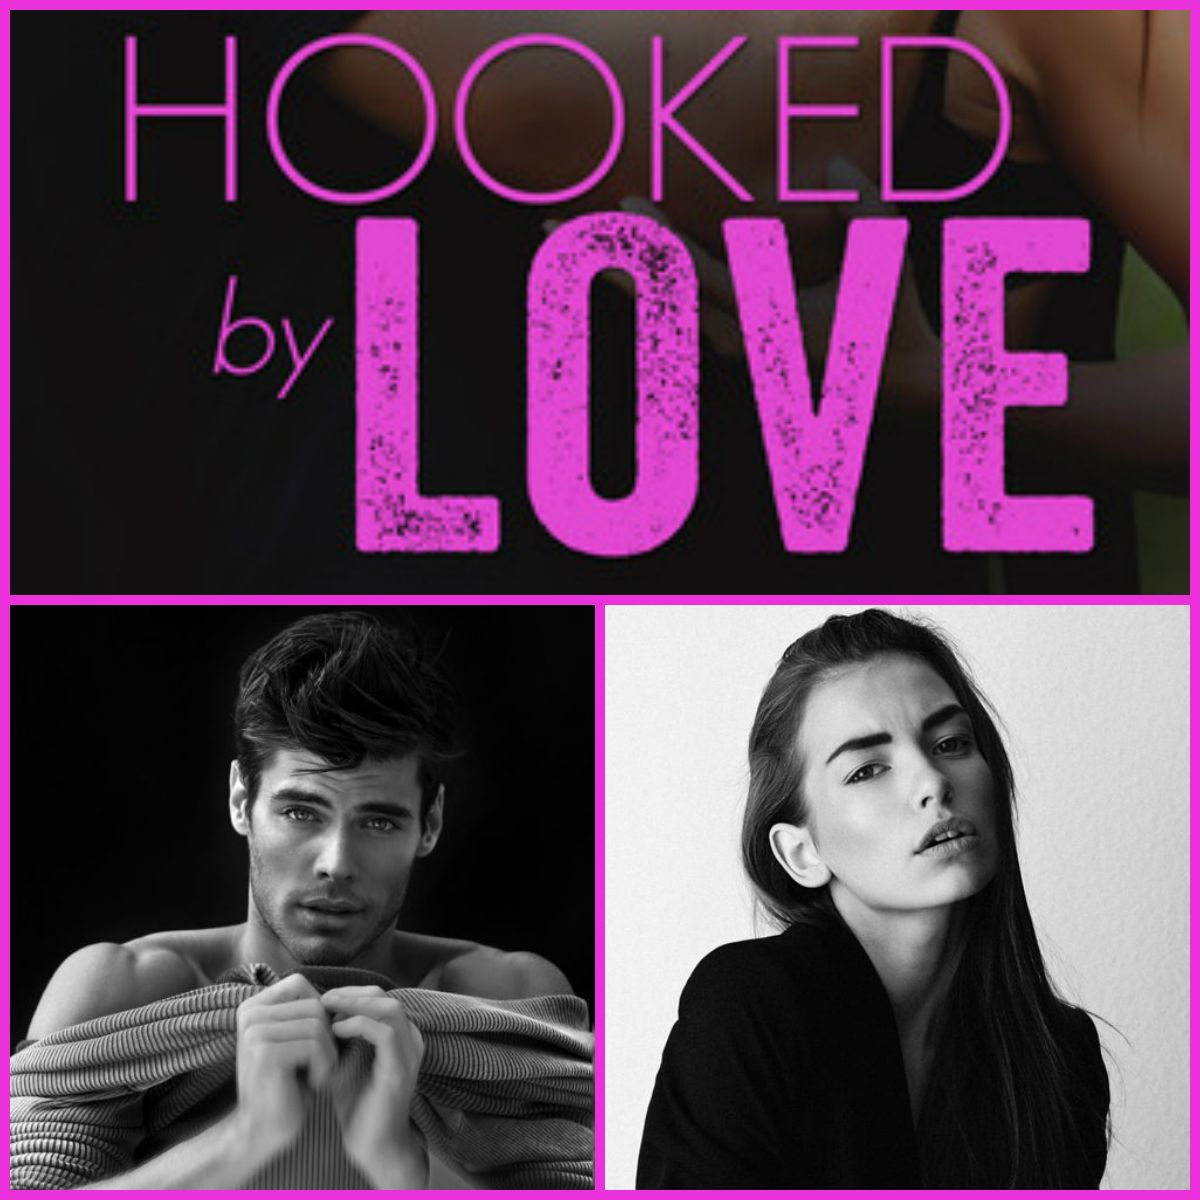 Hooked By Love Toni Aleo Book Review Pics Pinterest The Marriage Merger I Cant Believe This Series Is Over Will Always Be Queen Of Sports Romances No Matter What And She Did Such A Great Job With Addit